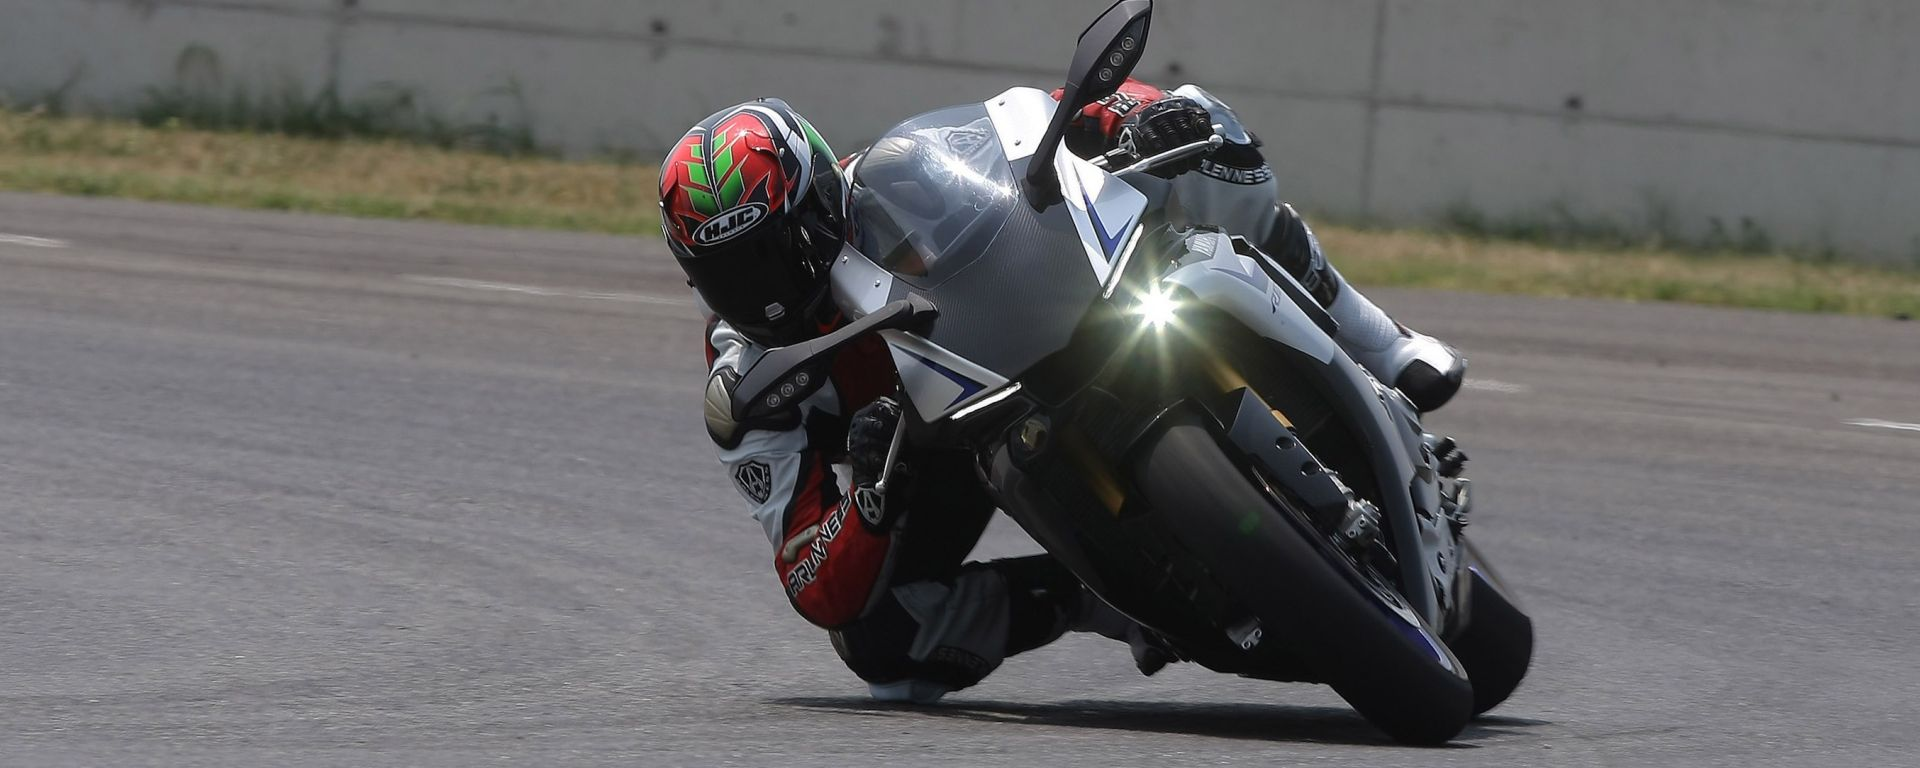 Metzeler Days On Track: a Vallelunga si guida la Yamaha YZF-R1